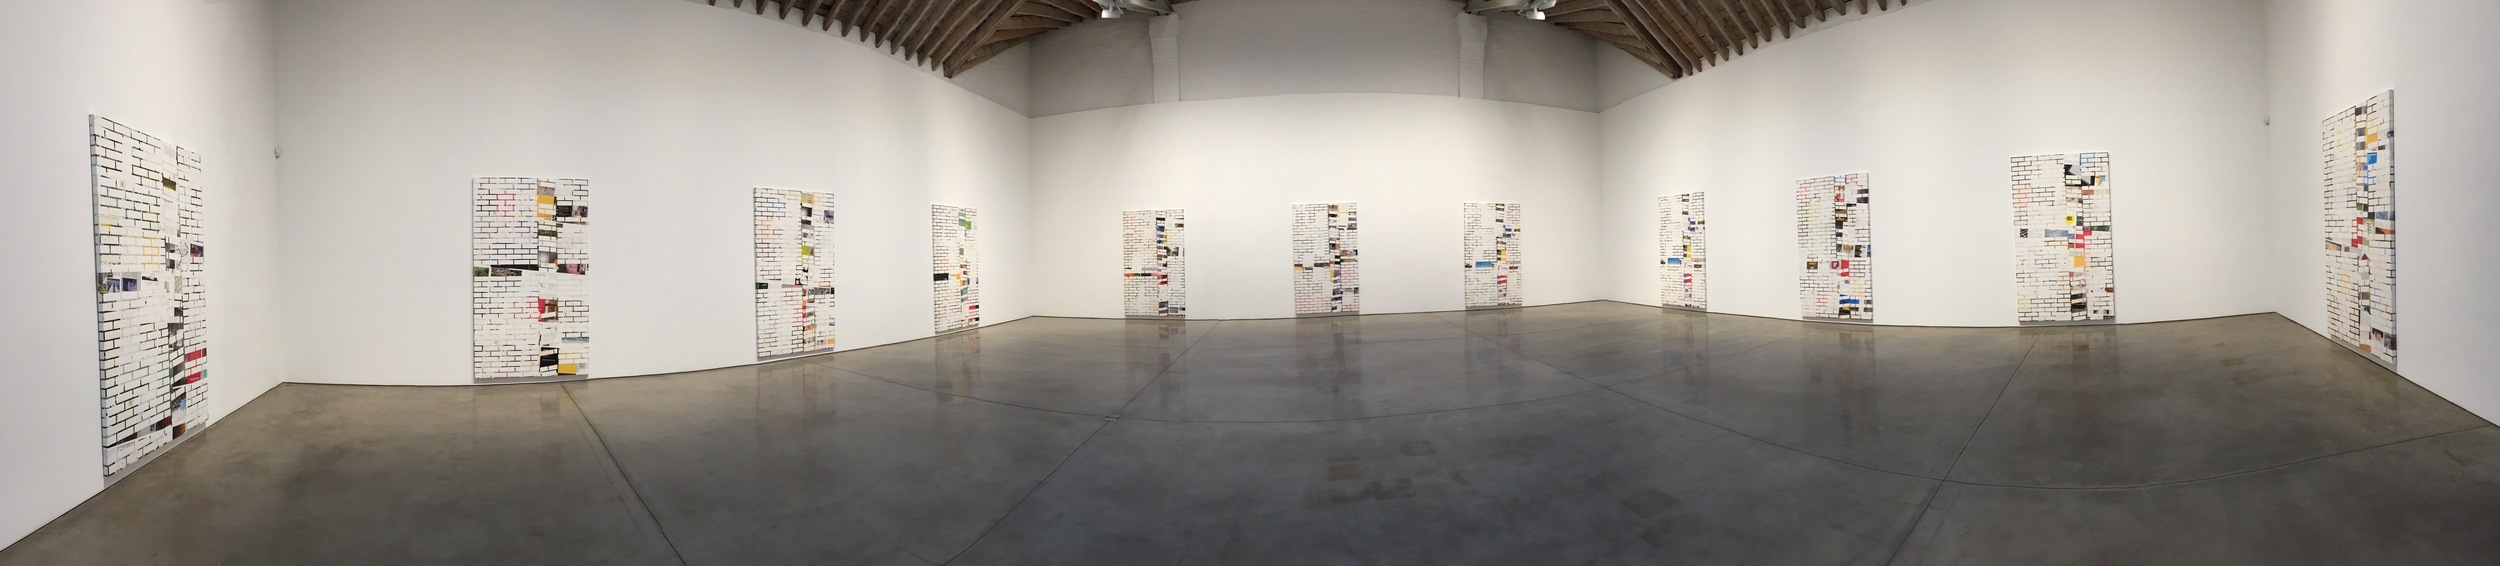 Exhibition Image,  Kelley Walker  ,  Paula Cooper Gallery, New York Photo Credit: Cincala Art Advisory